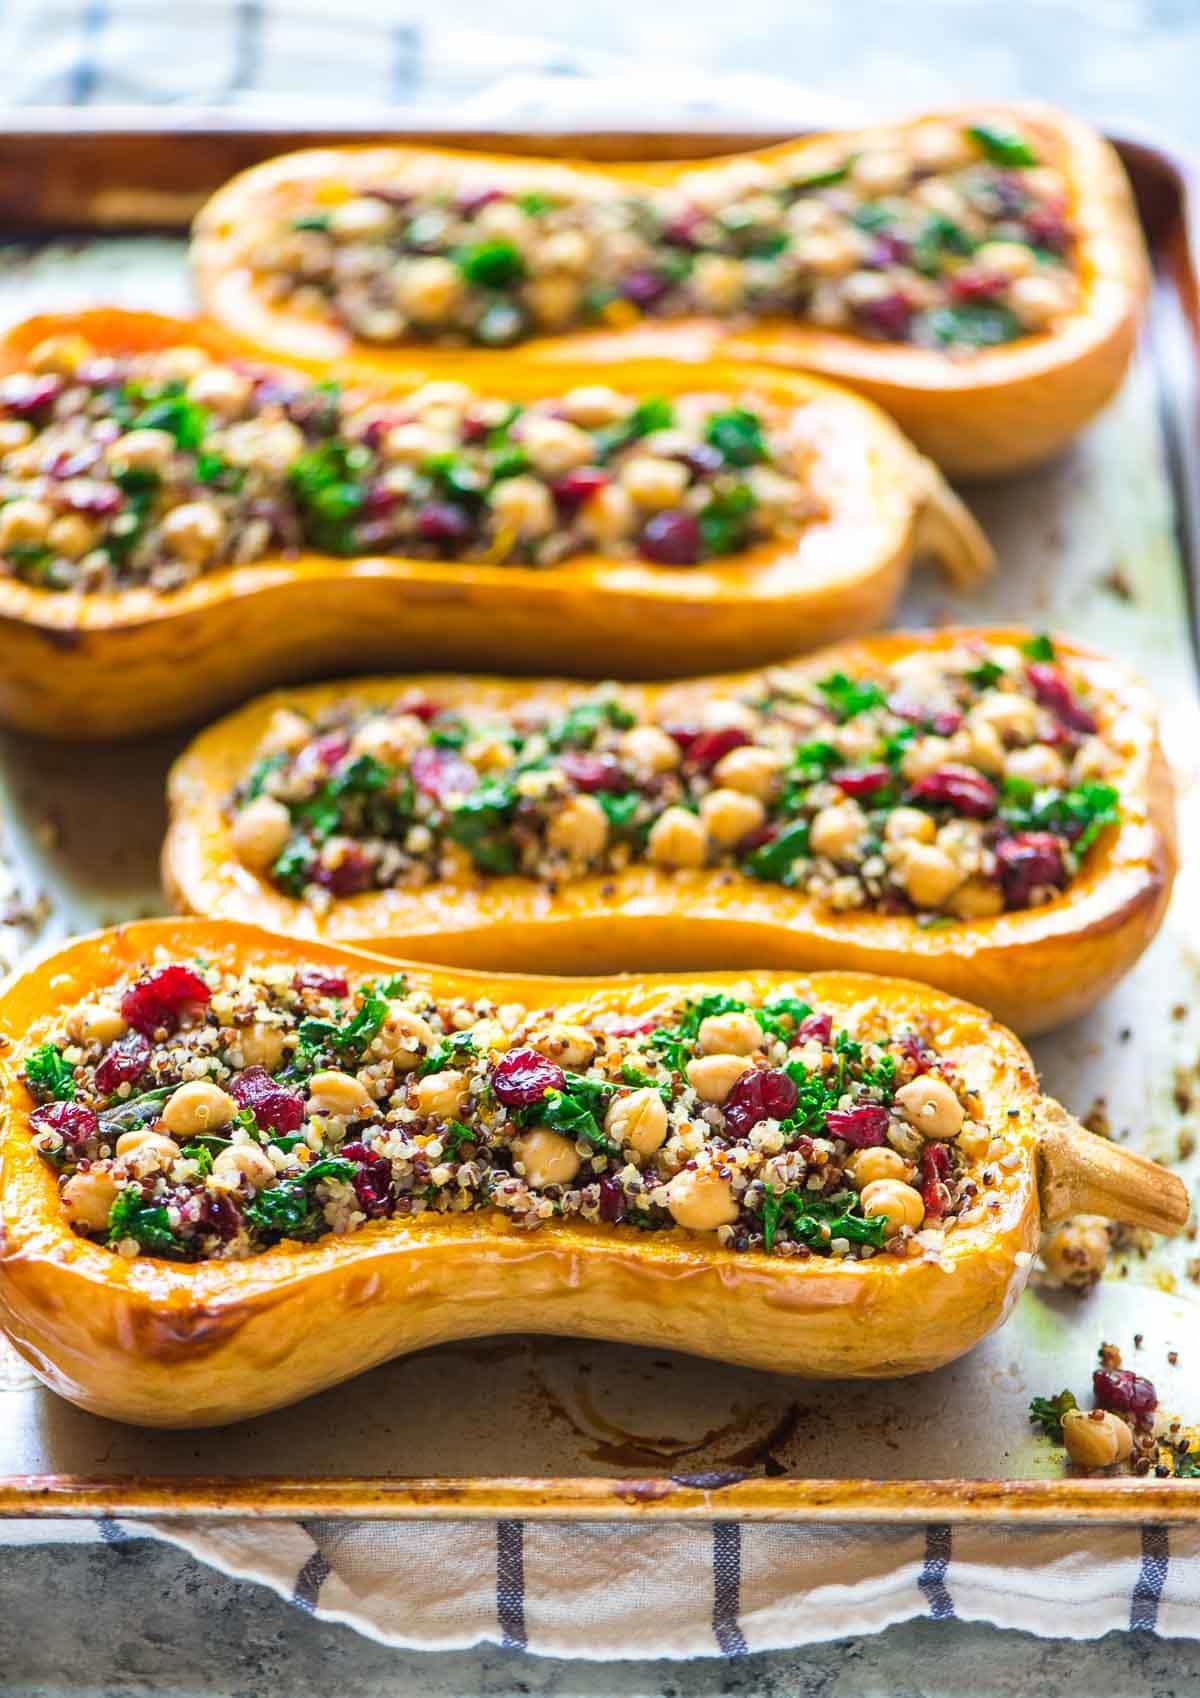 Vegetarian Fall Dinner Recipes  Quinoa Stuffed Butternut Squash with Cranberries and Kale